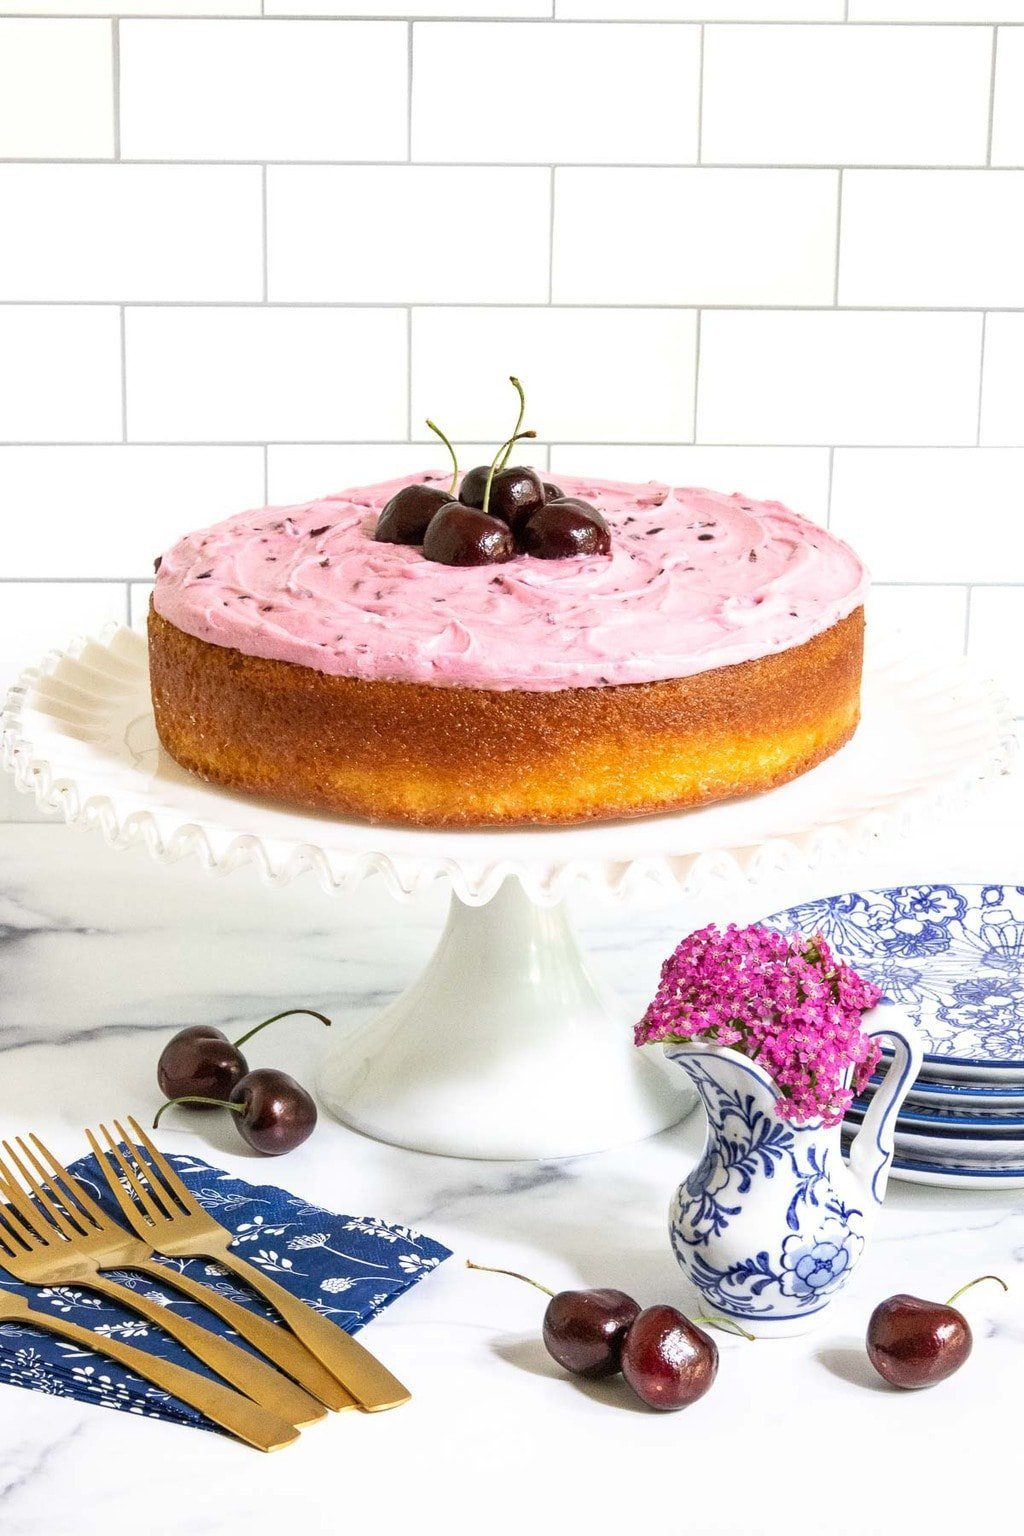 Vertical photo of a French Almond Cake with Cherry Buttercream on a white pedestal cake stand.